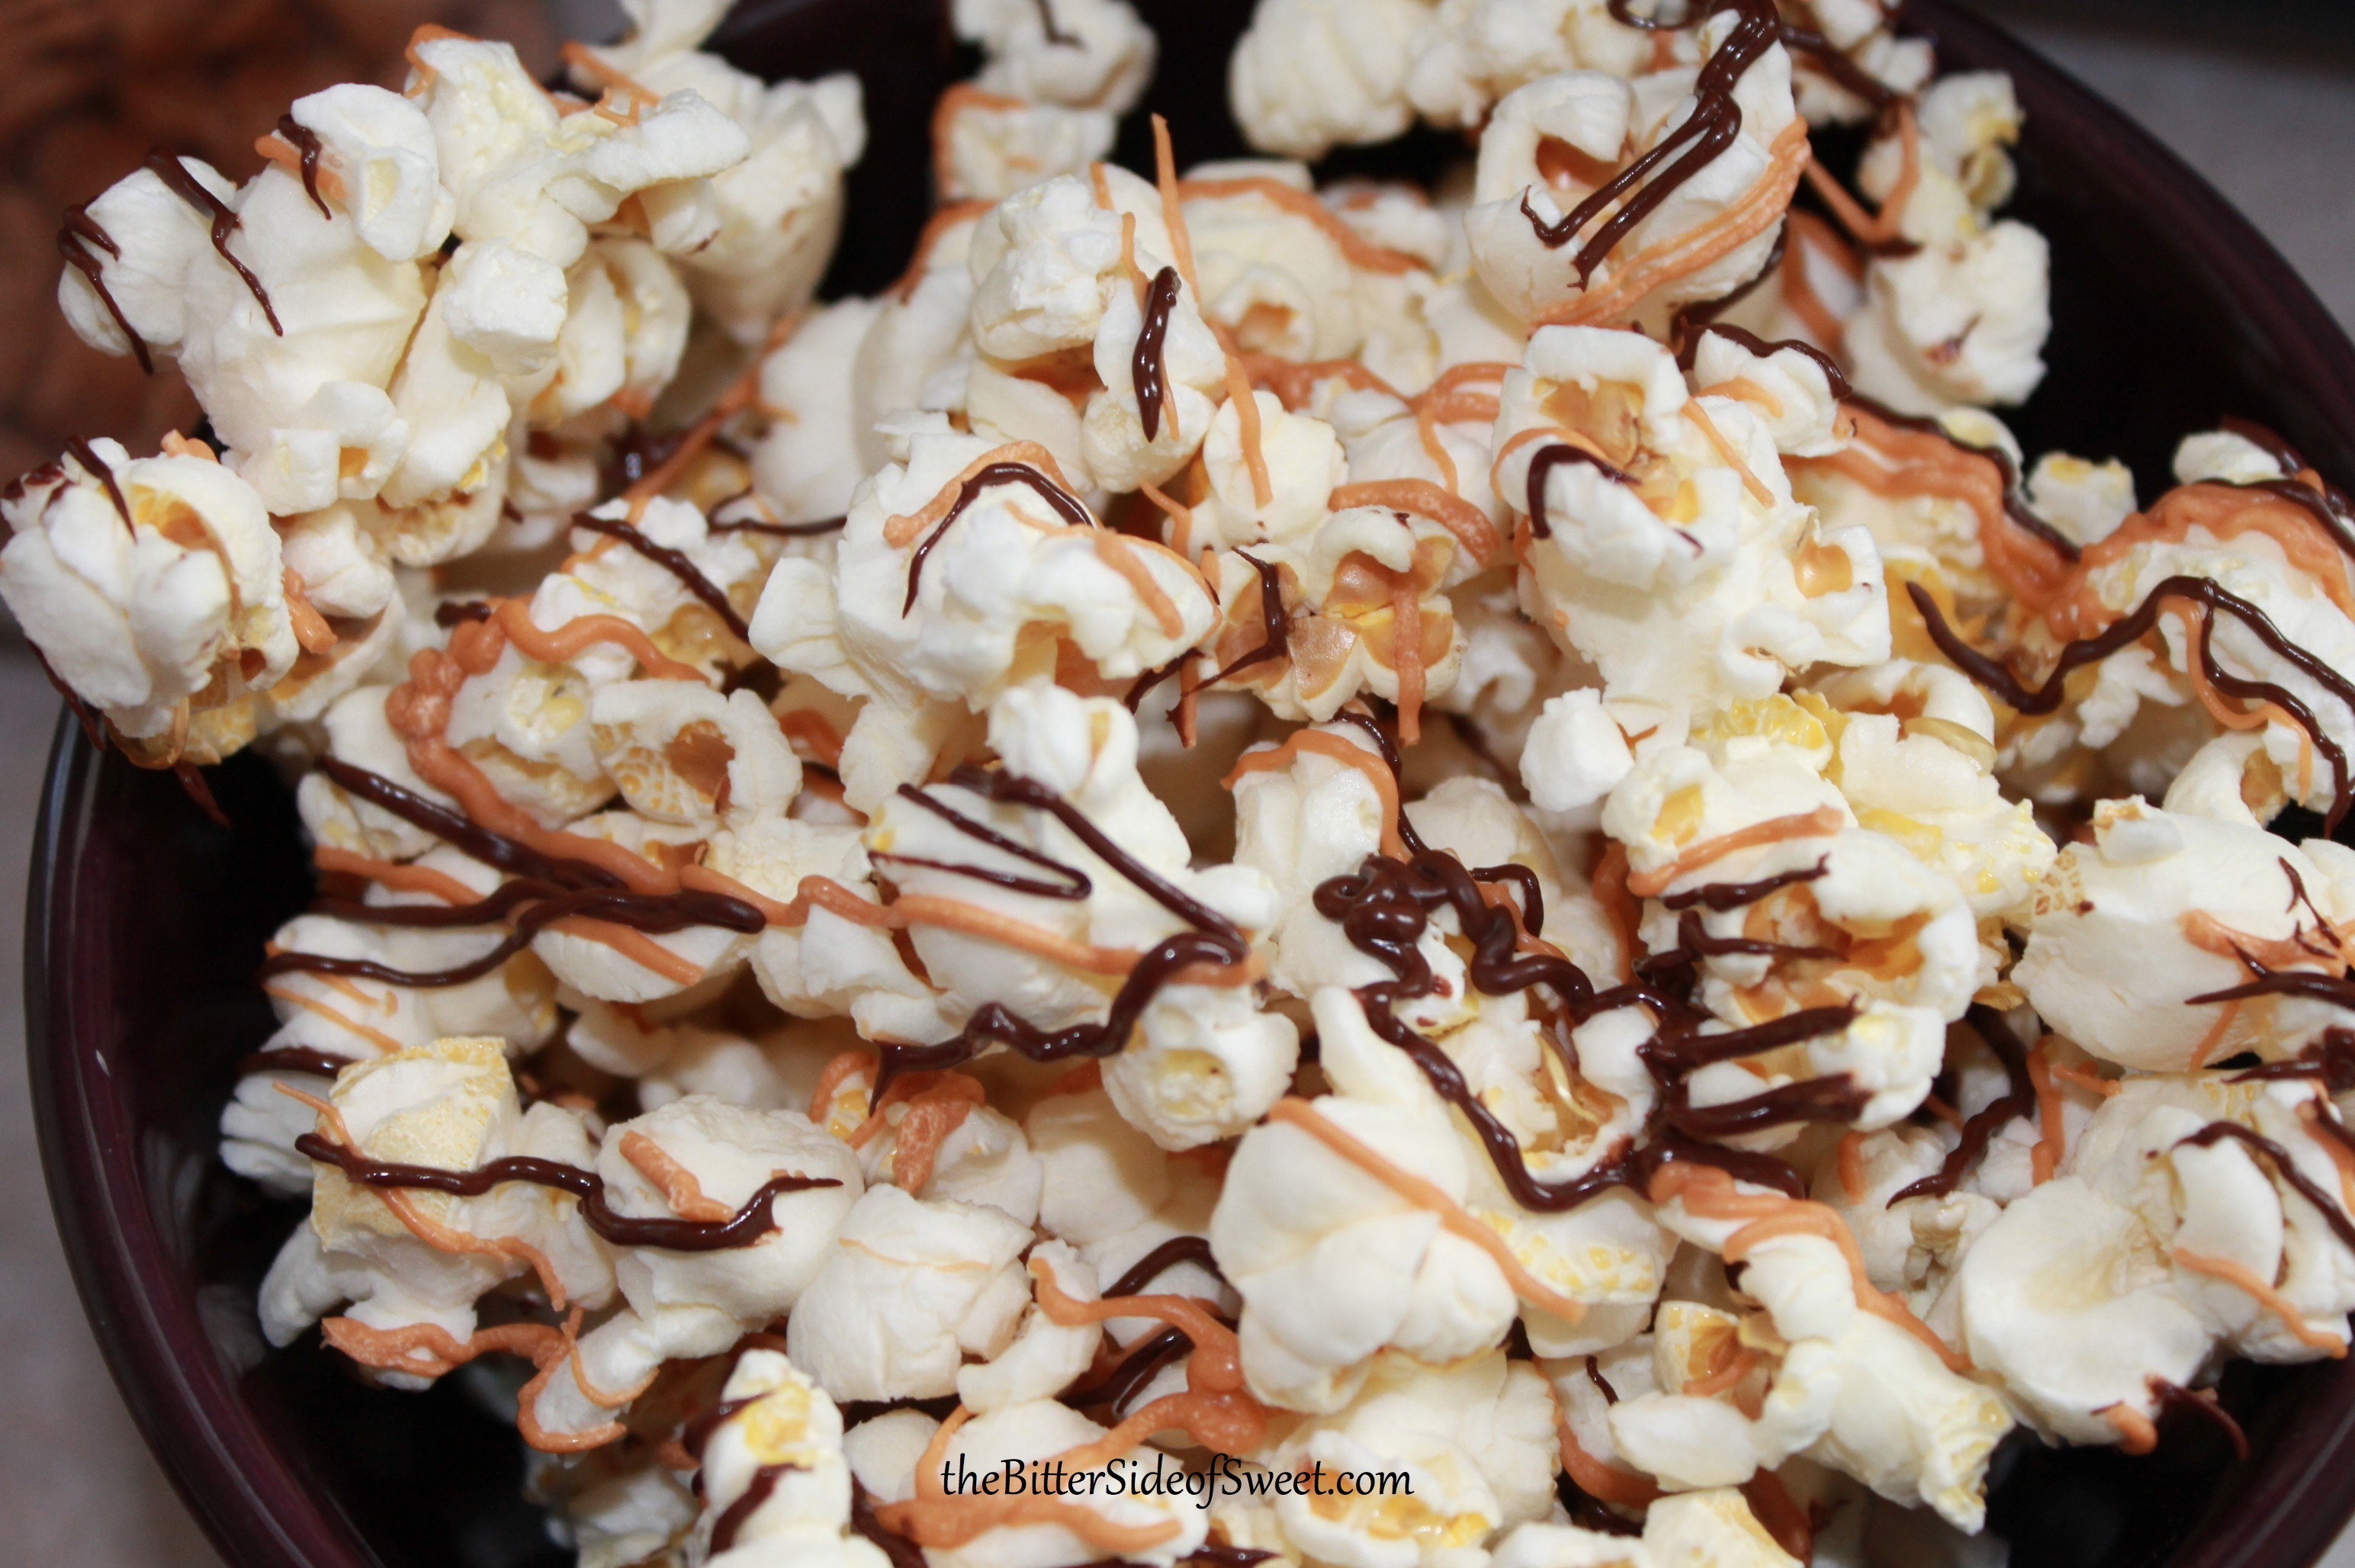 Butterscotch Chocolate Popcorn